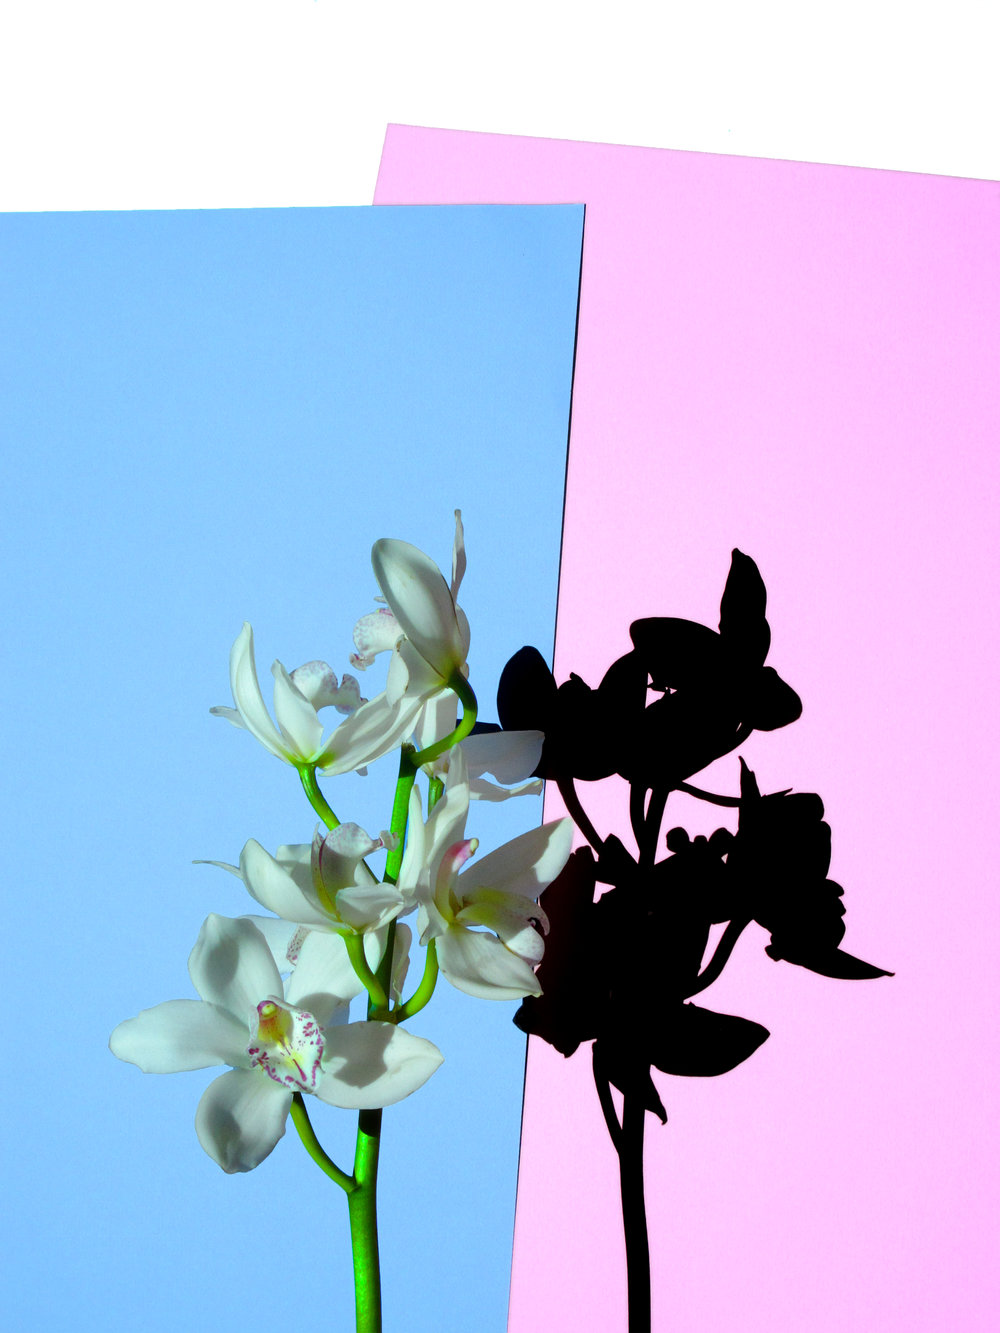 12x16_pink_blue_orchid.jpg